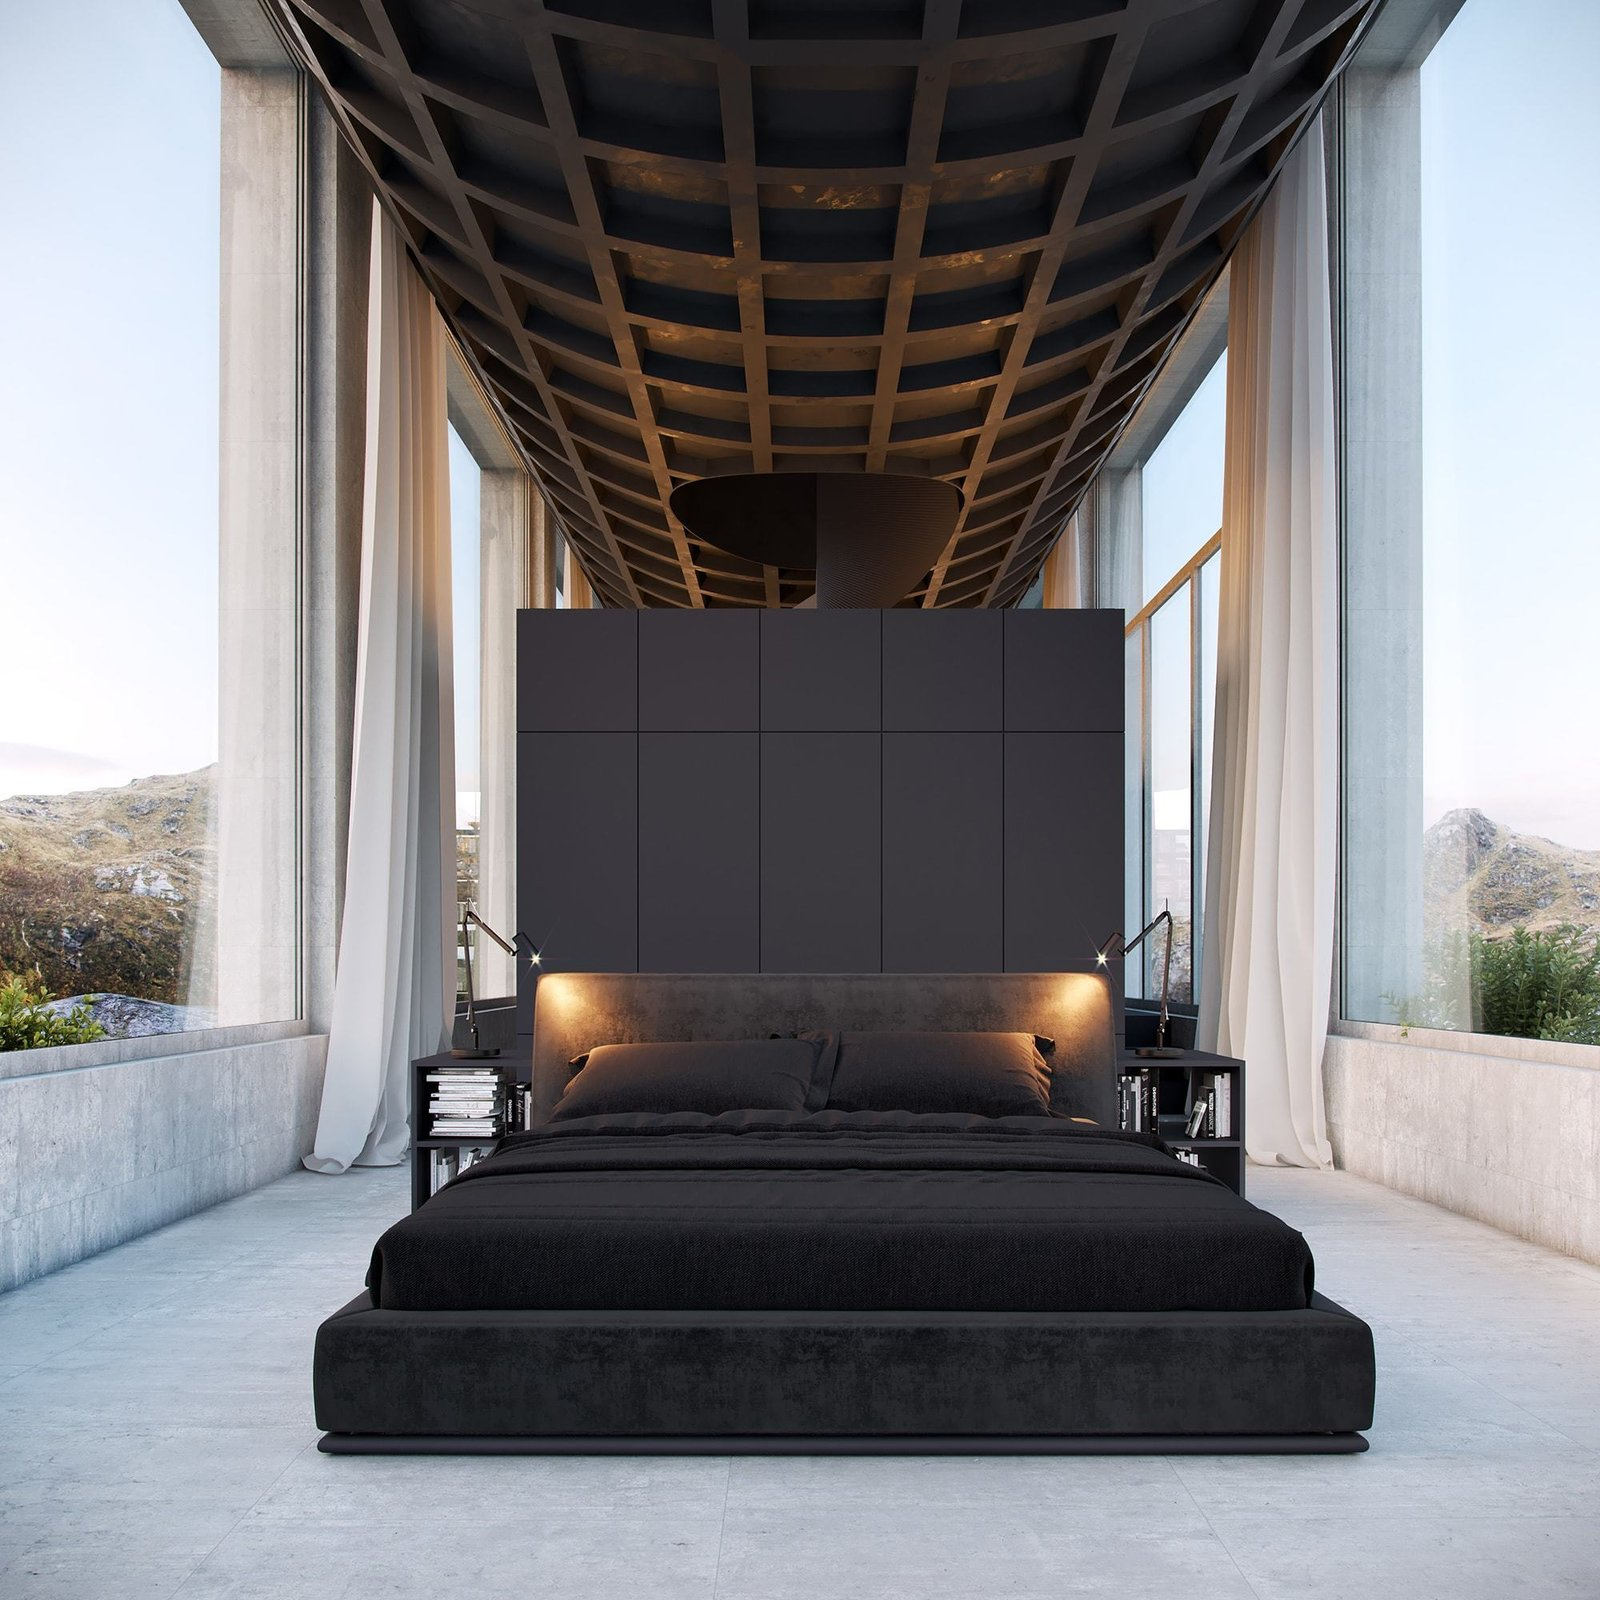 Bedroom, Bed, Night Stands, Concrete Floor, and Table Lighting Bedroom  Best Photos from Infinity House